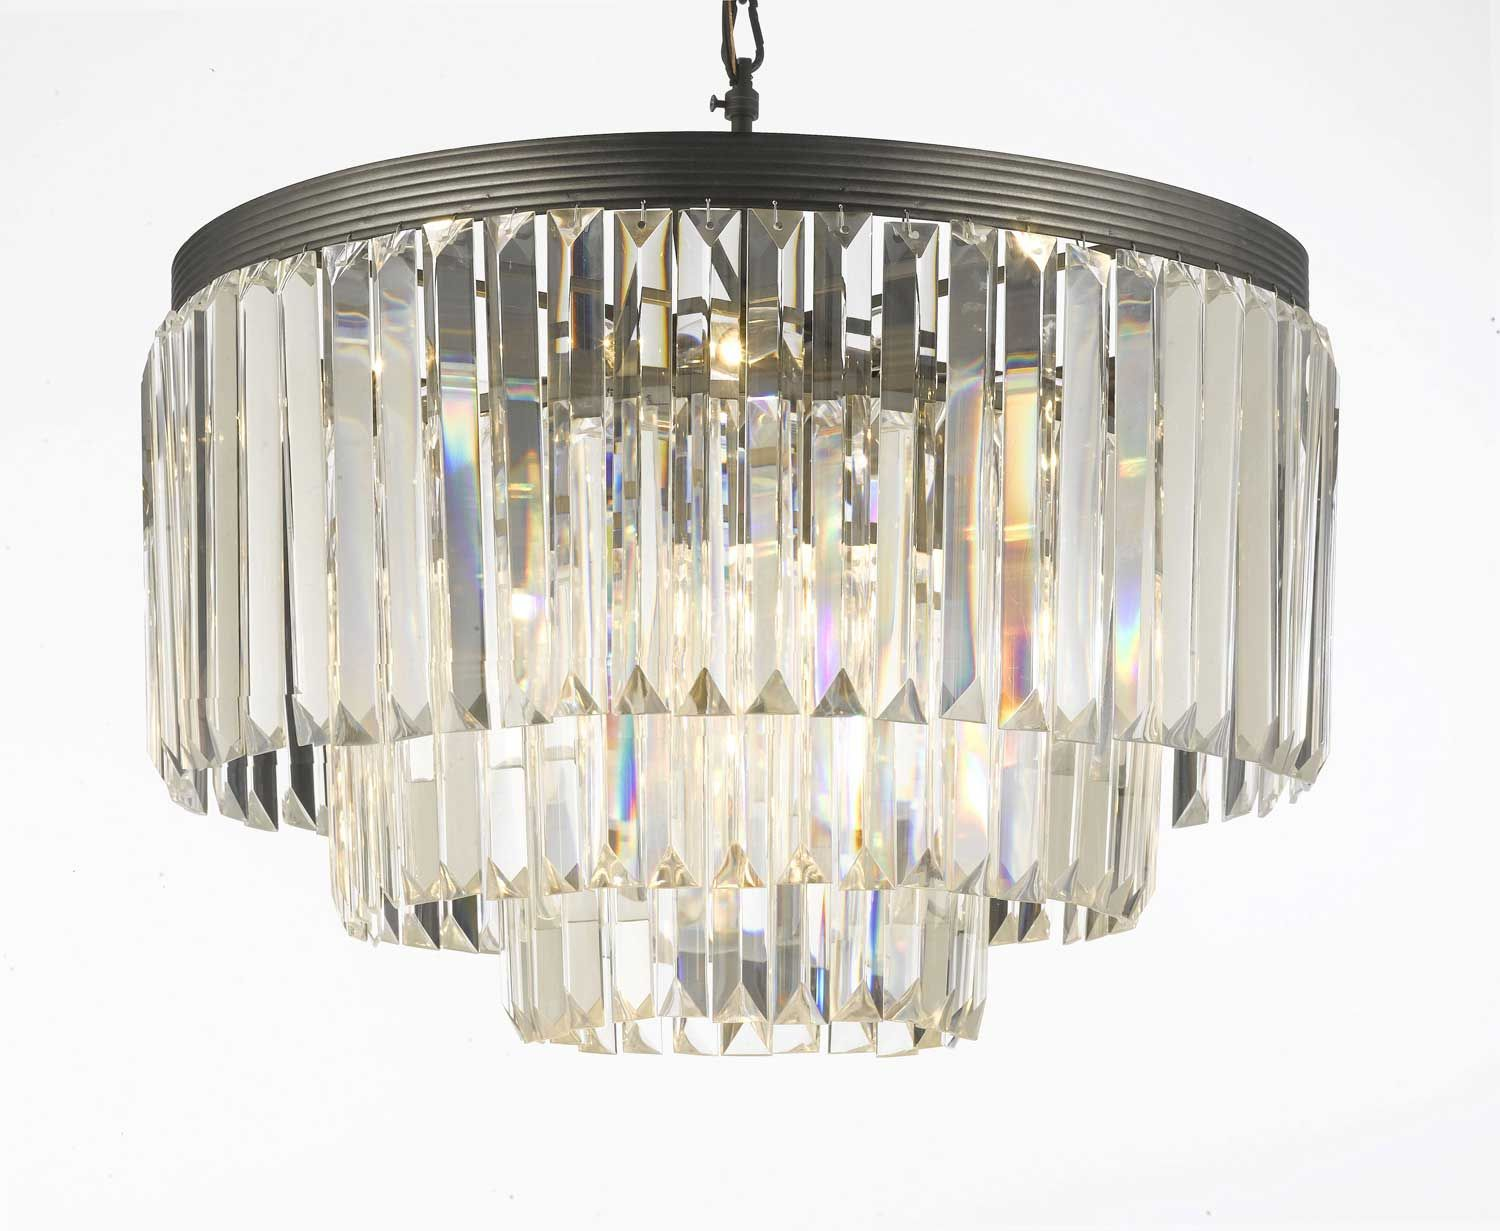 Wh Wholesale Vintage Lead Crystal Table Lamp Buy Cheap - G7 1100 gallery 18th 19th century art retro odeon crystal glass fringe 3